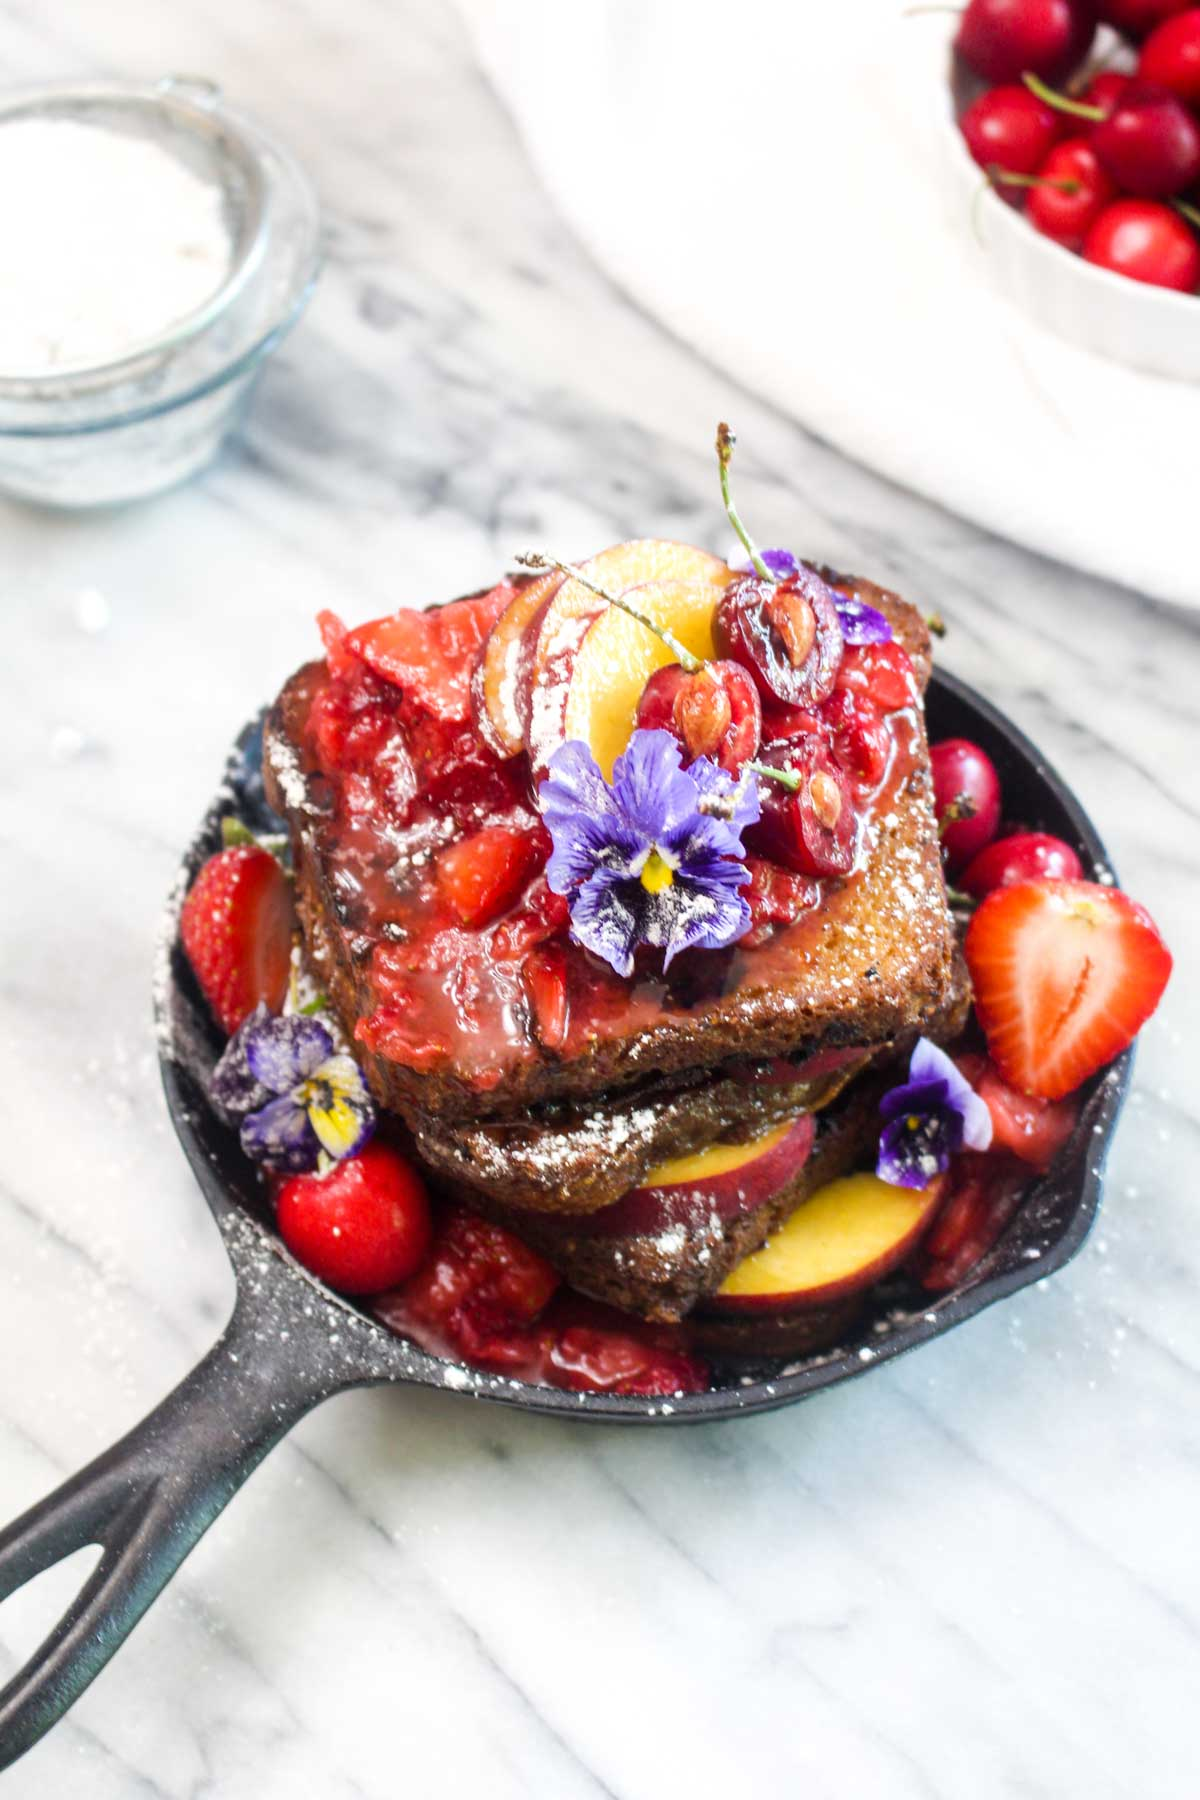 Three quarters view of a cast iron skillet with a stack of french toast with strawberry sauce, flowers, powdered sugar, and peaches.